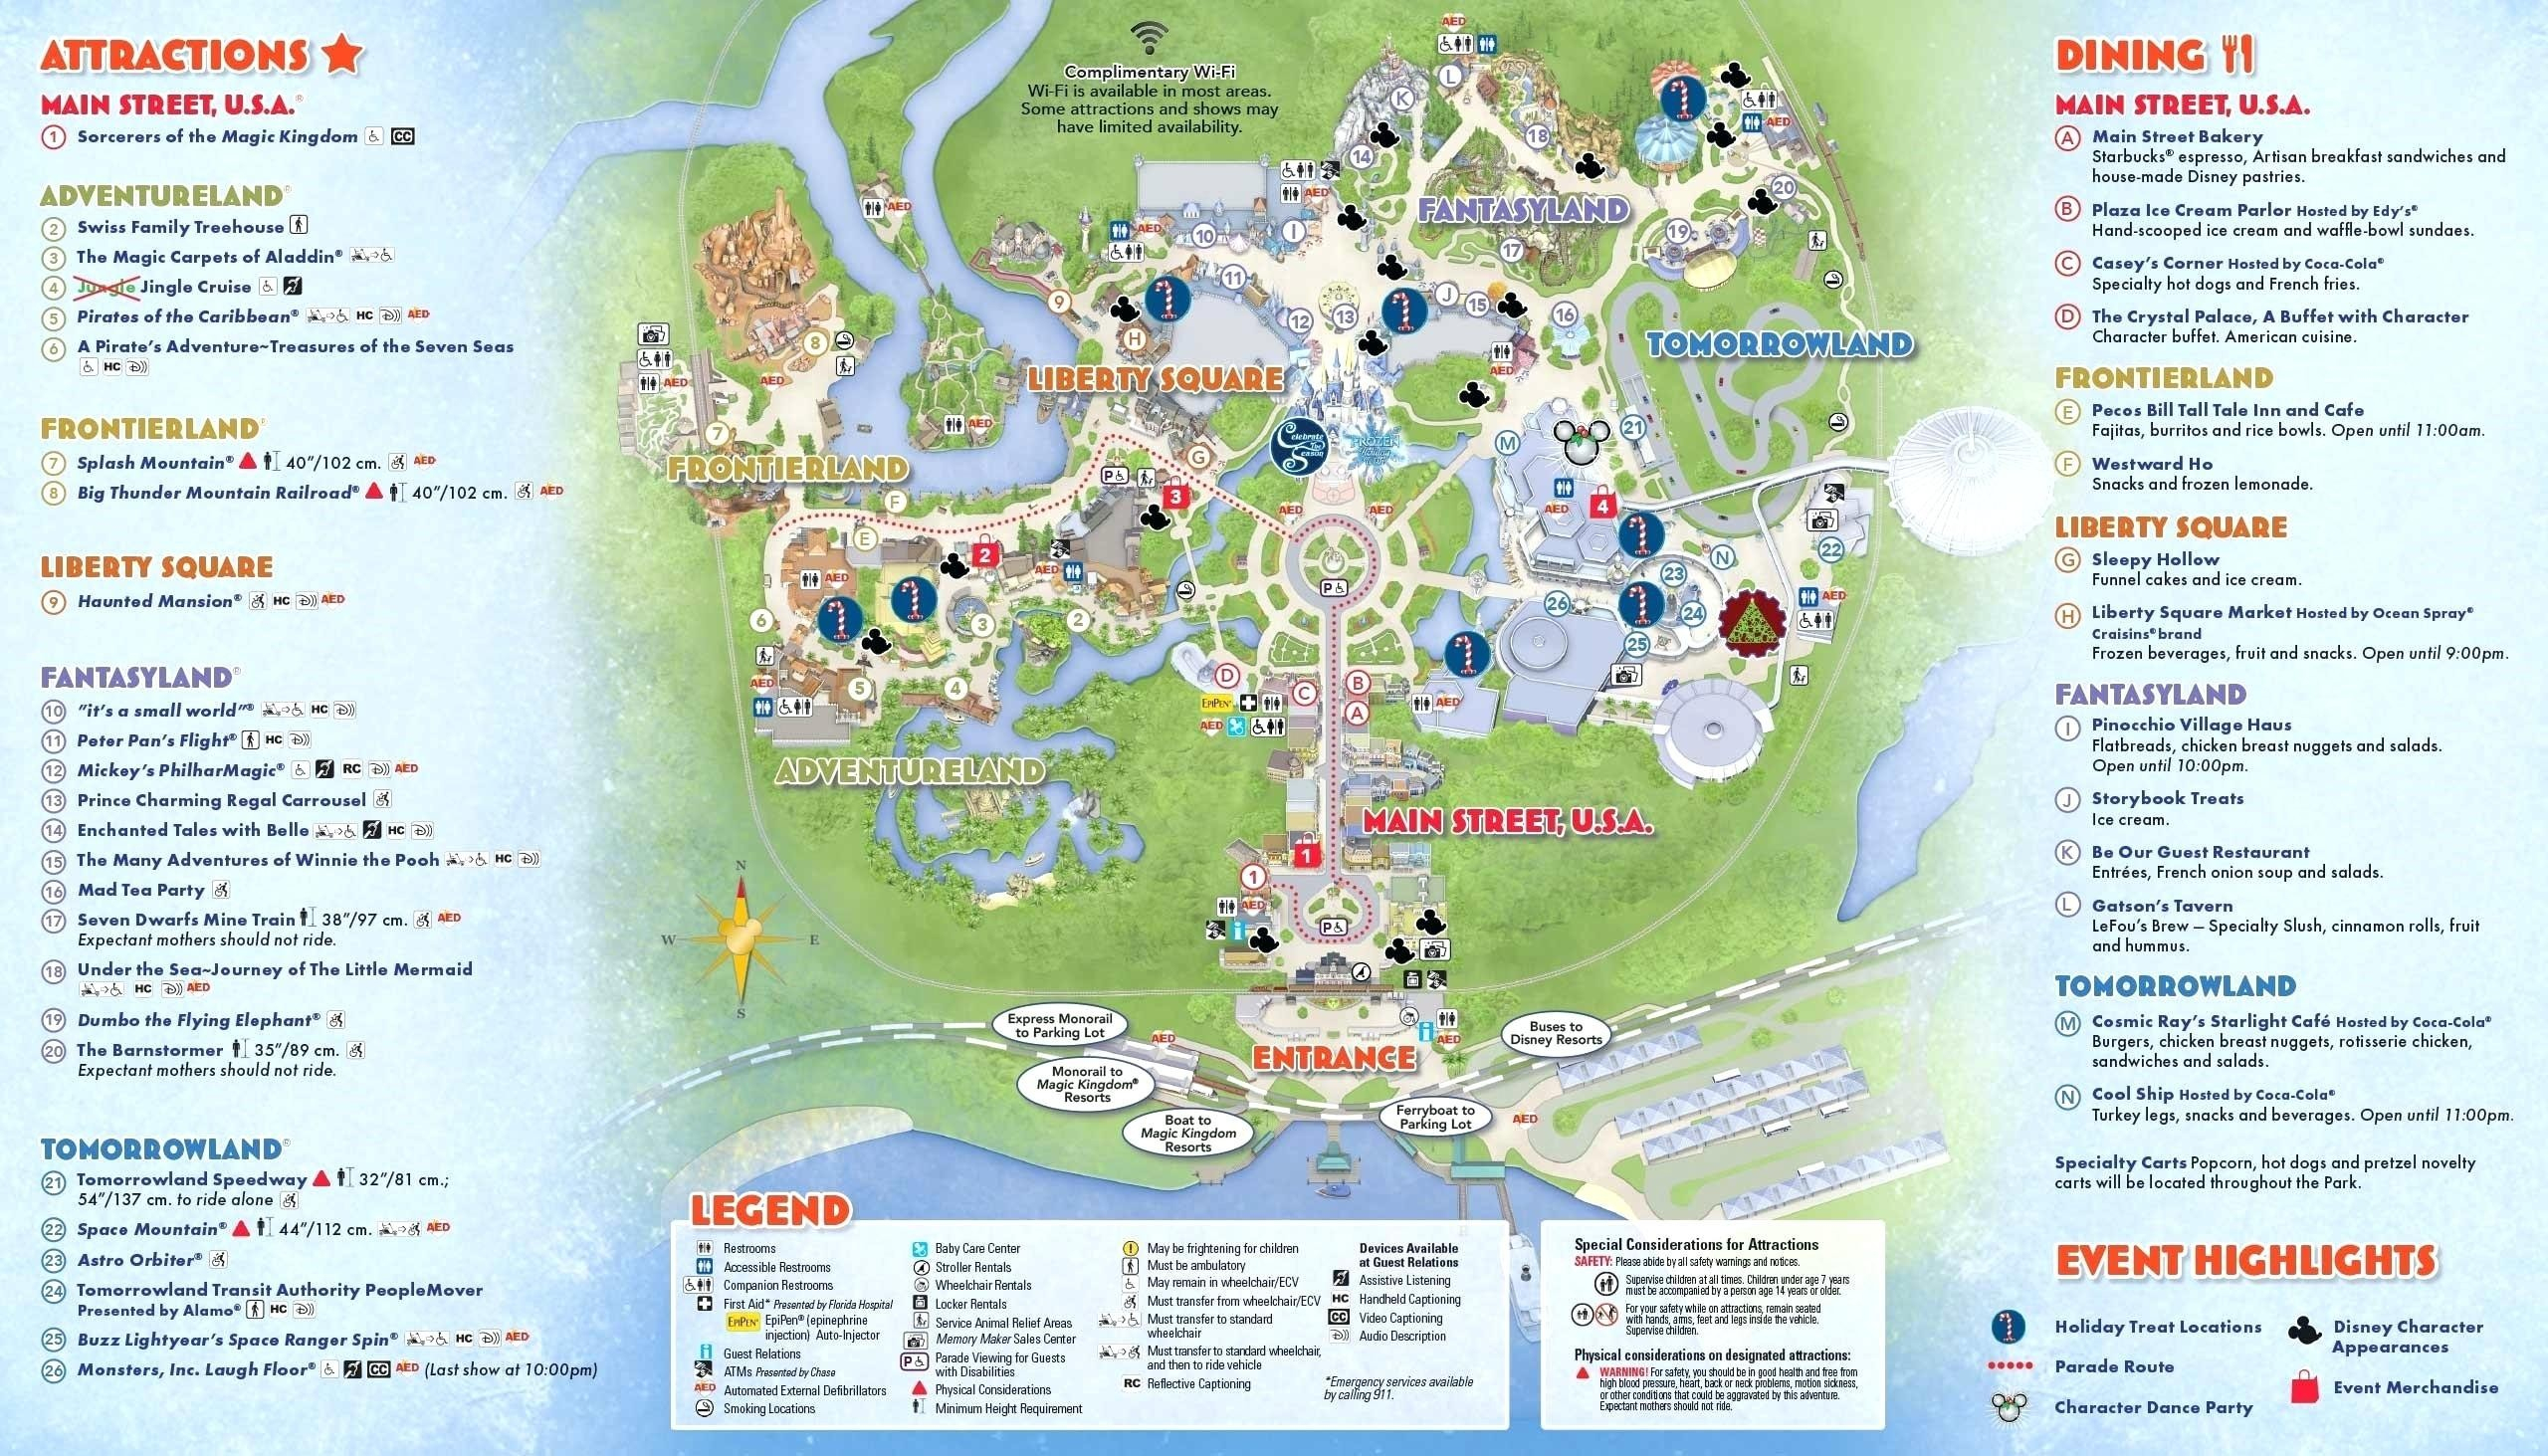 Printable Disney World Maps 2017 Awesome Google Map Orlando Copy - Printable Disney World Maps 2017